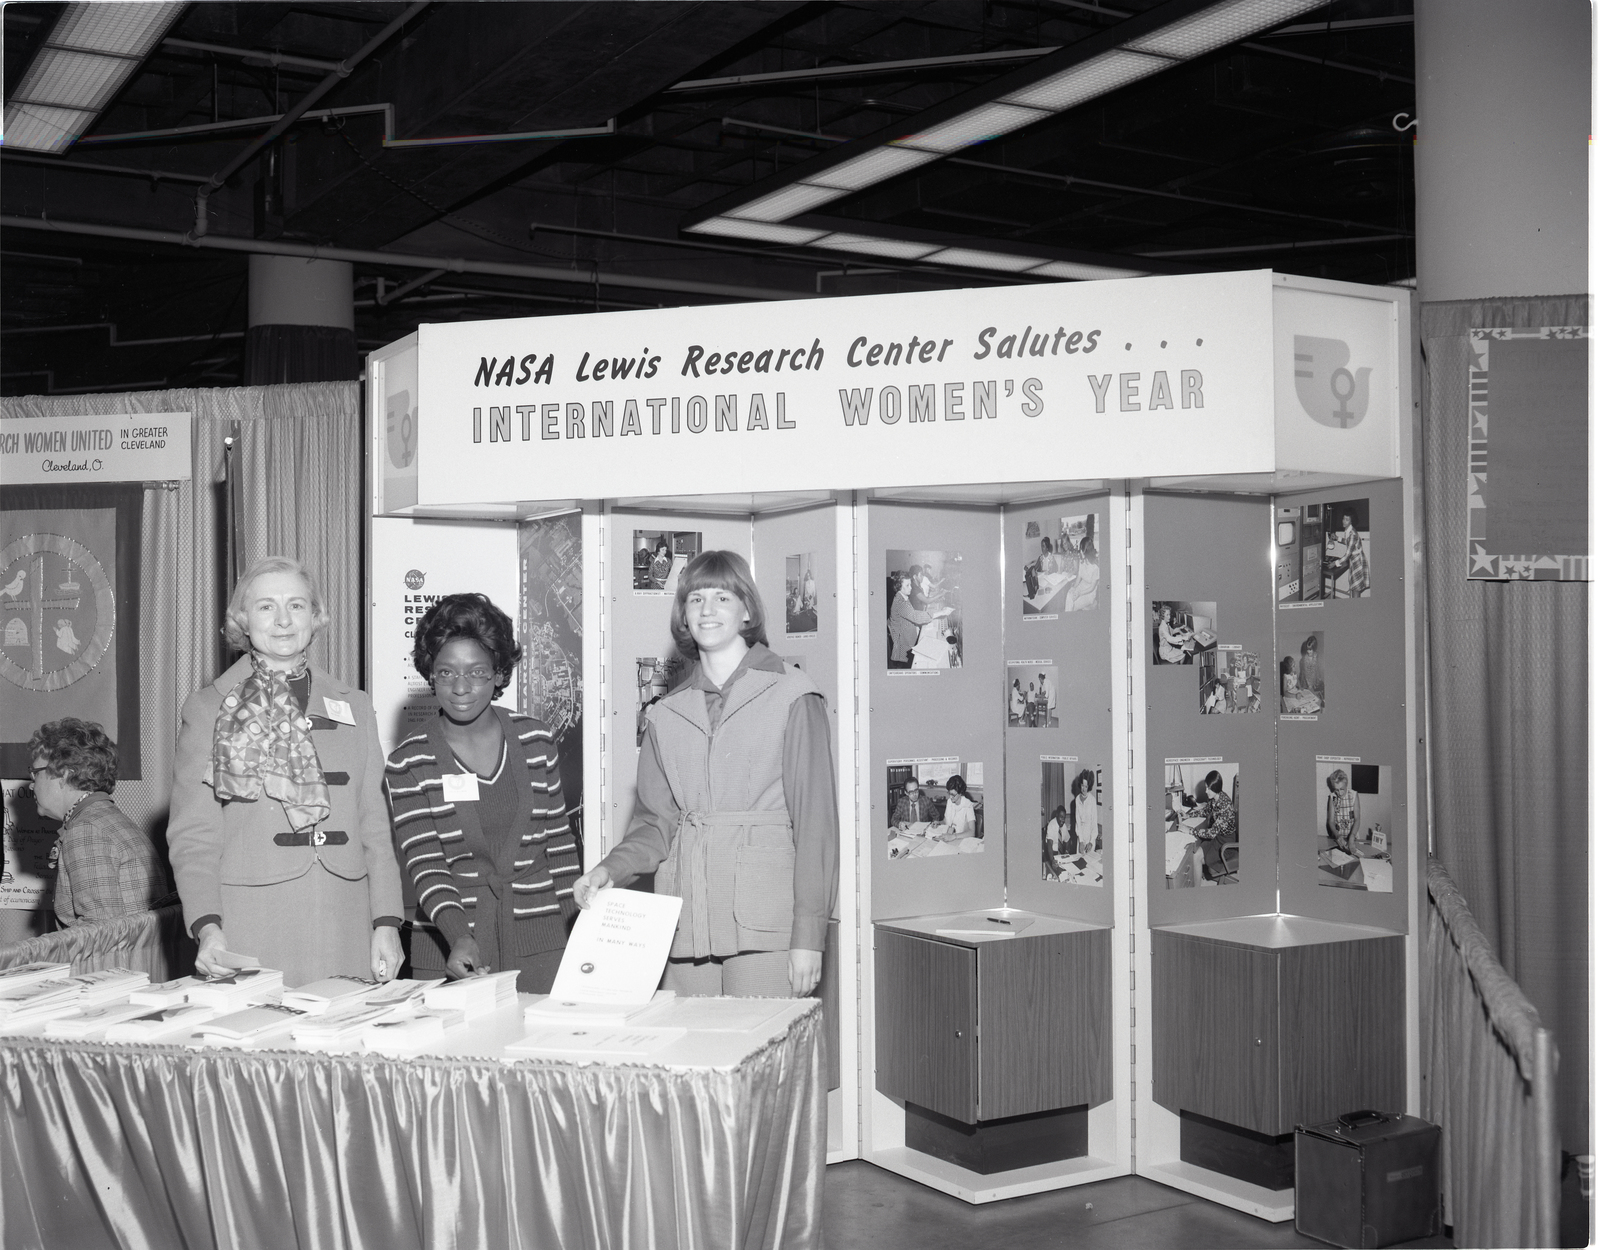 INTERNATIONAL WOMENS YEAR IWY CONGRESS AT CONVENTION CENTER CLEVELAND OHIO - WOMEN IN GOVERNMENT SPEAKERS - NASA LEWIS DISPLAY - FEDERAL EXECUTIVE BOARD FEB DISPLAY